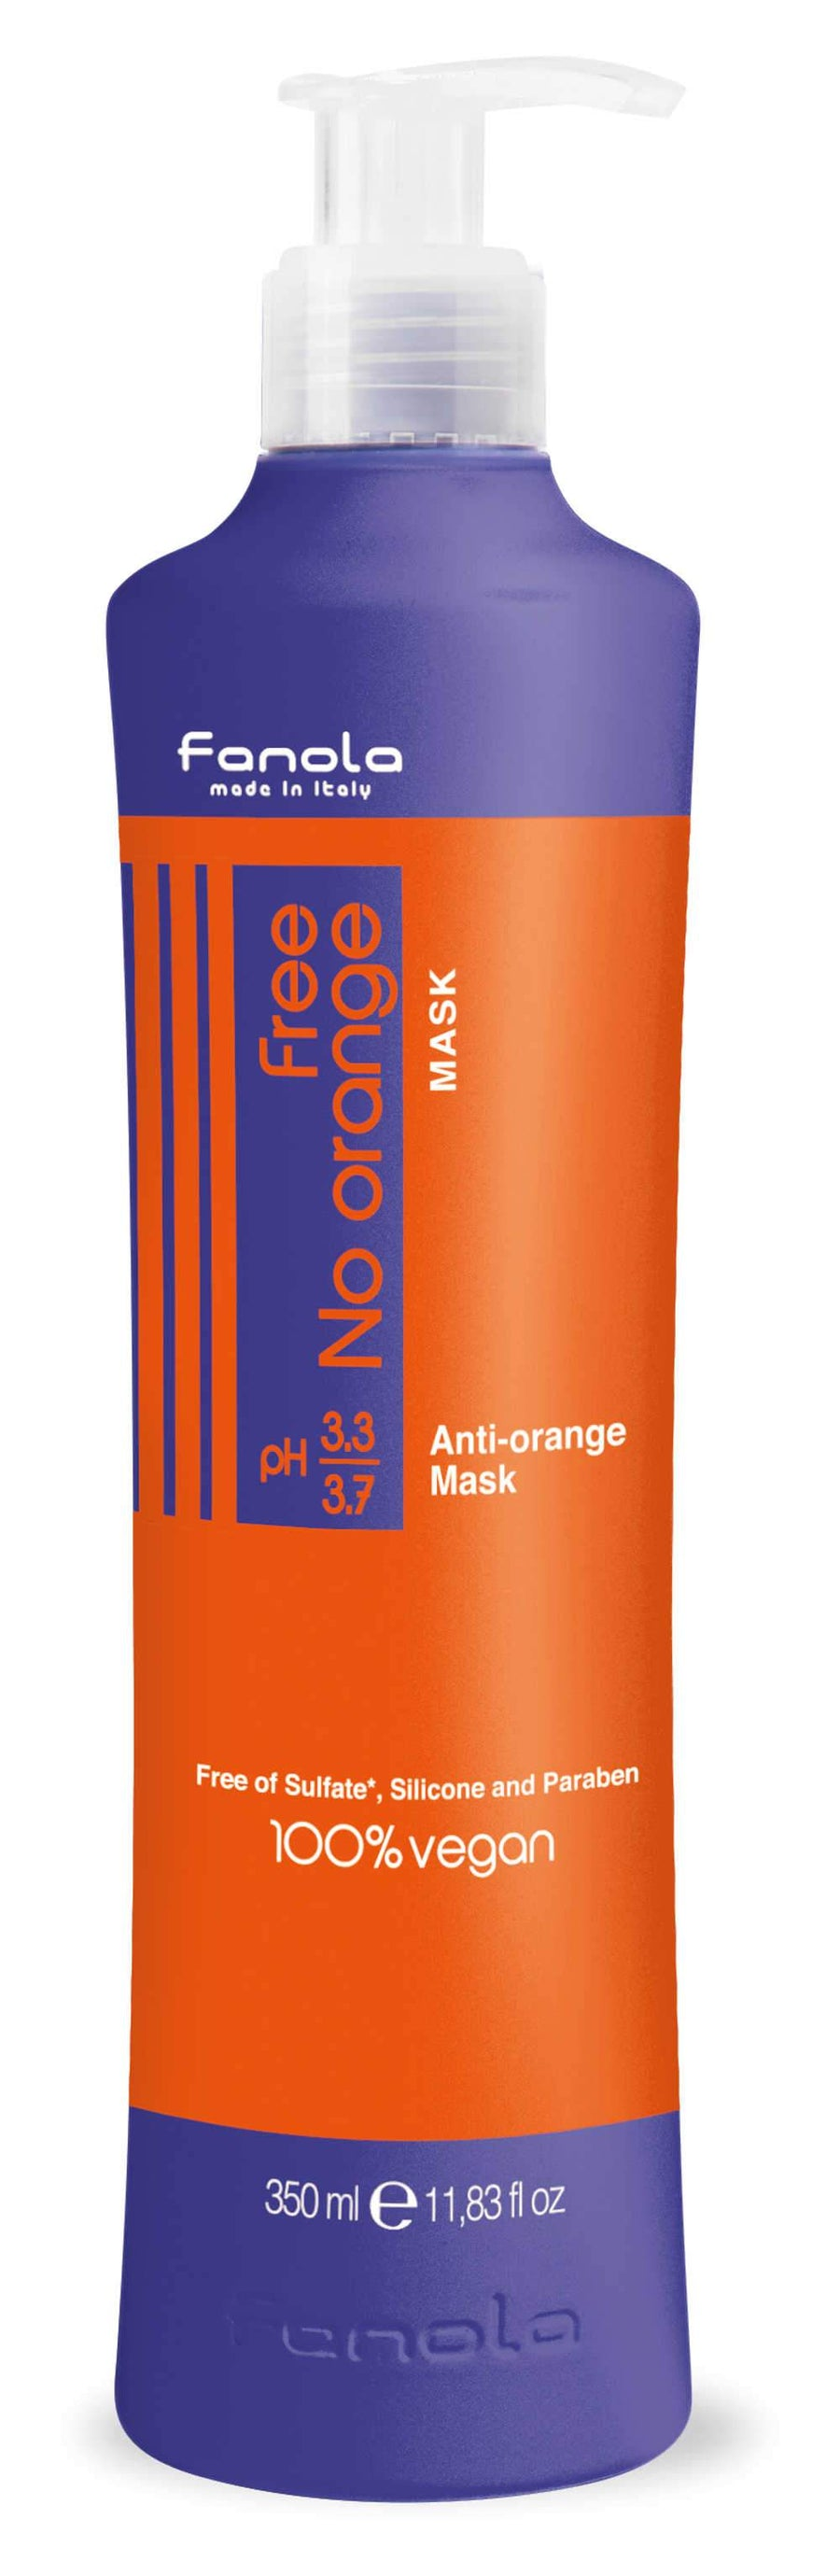 Fanola Free No Orange Vegan Shampoo or Mask Hair Shampoos Fanola Mask, 350 ML